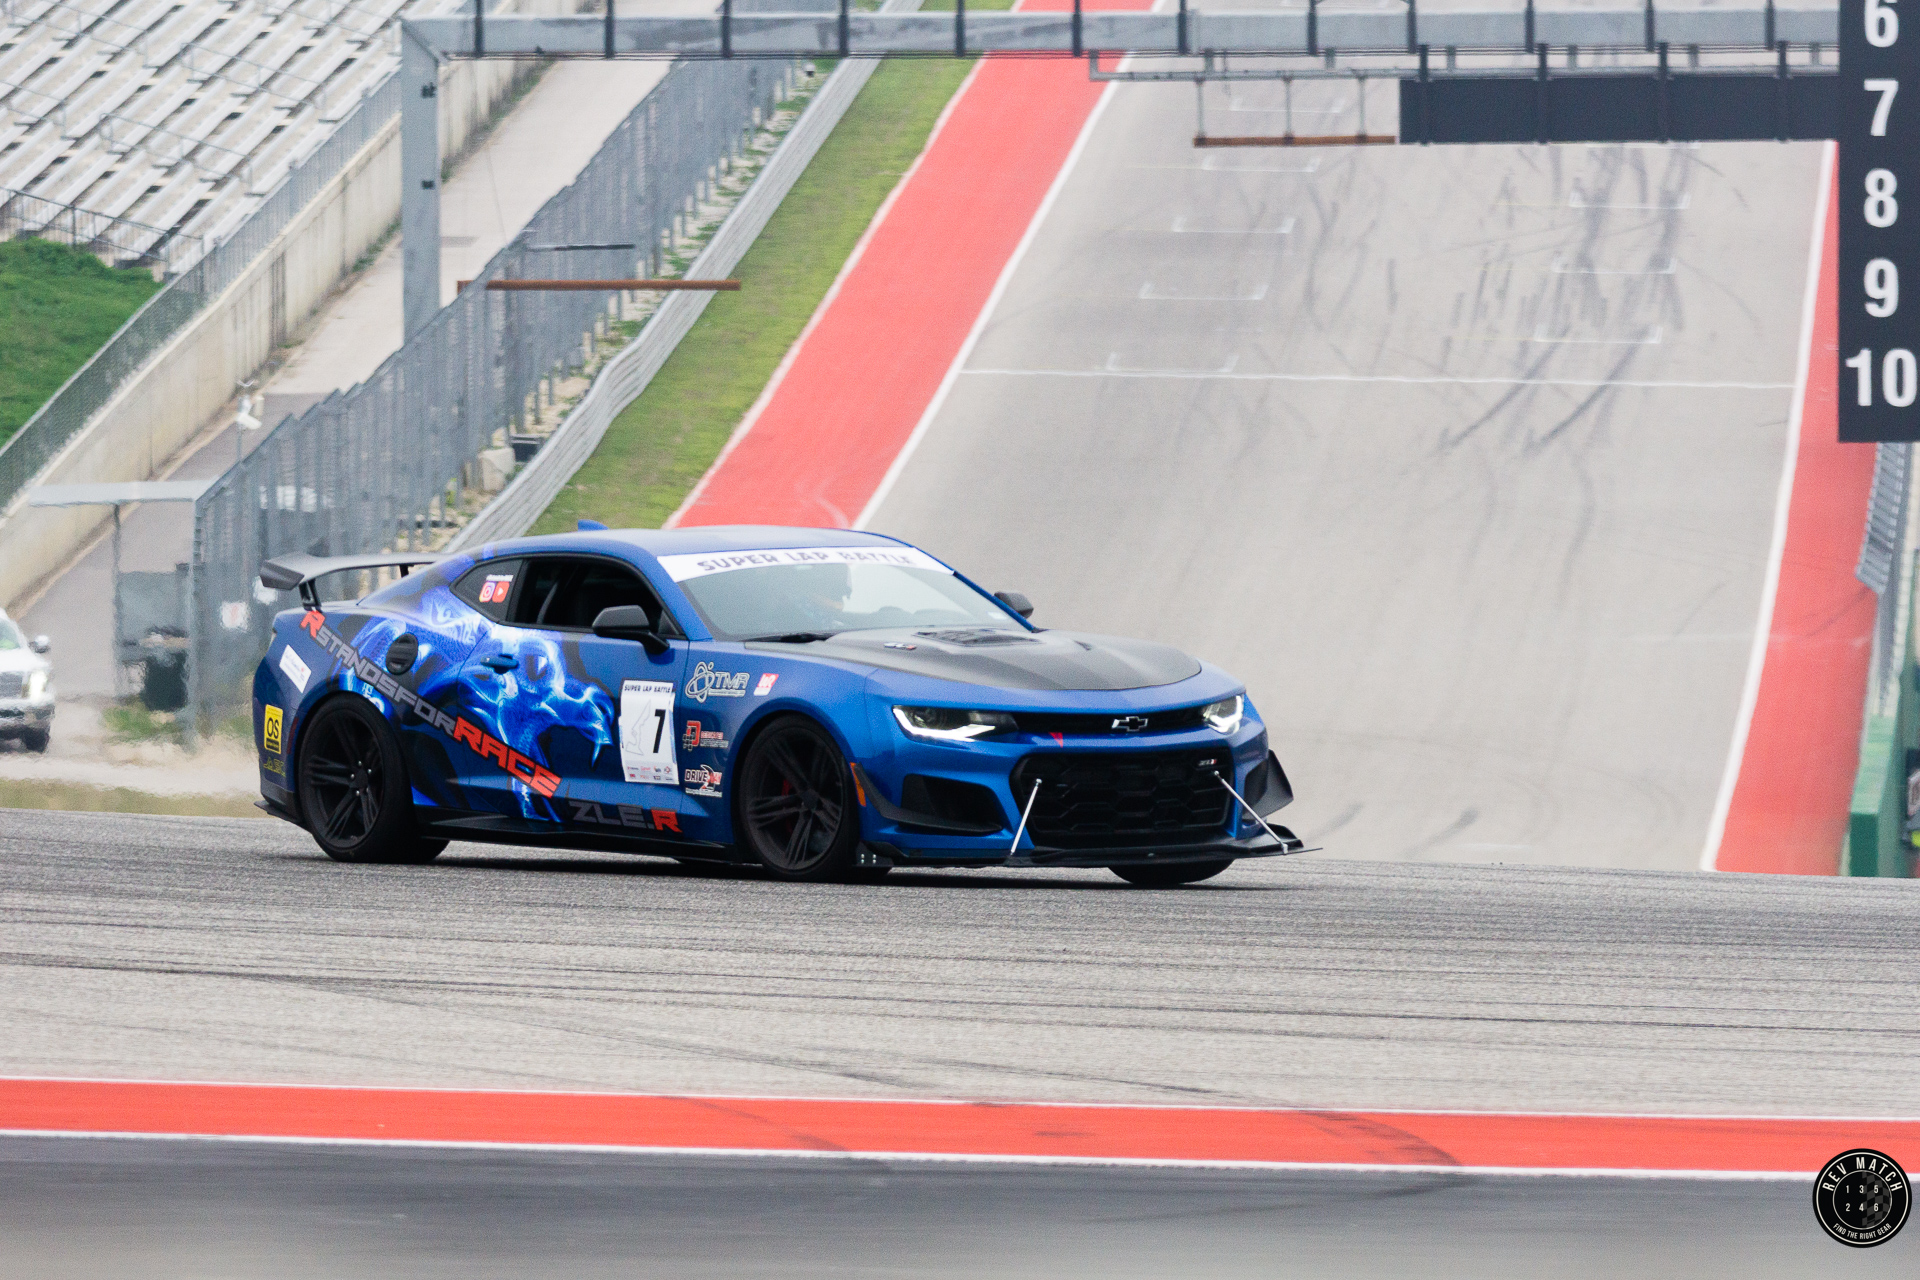 Super Lap Battle COTA Rev Match Media-15.jpg